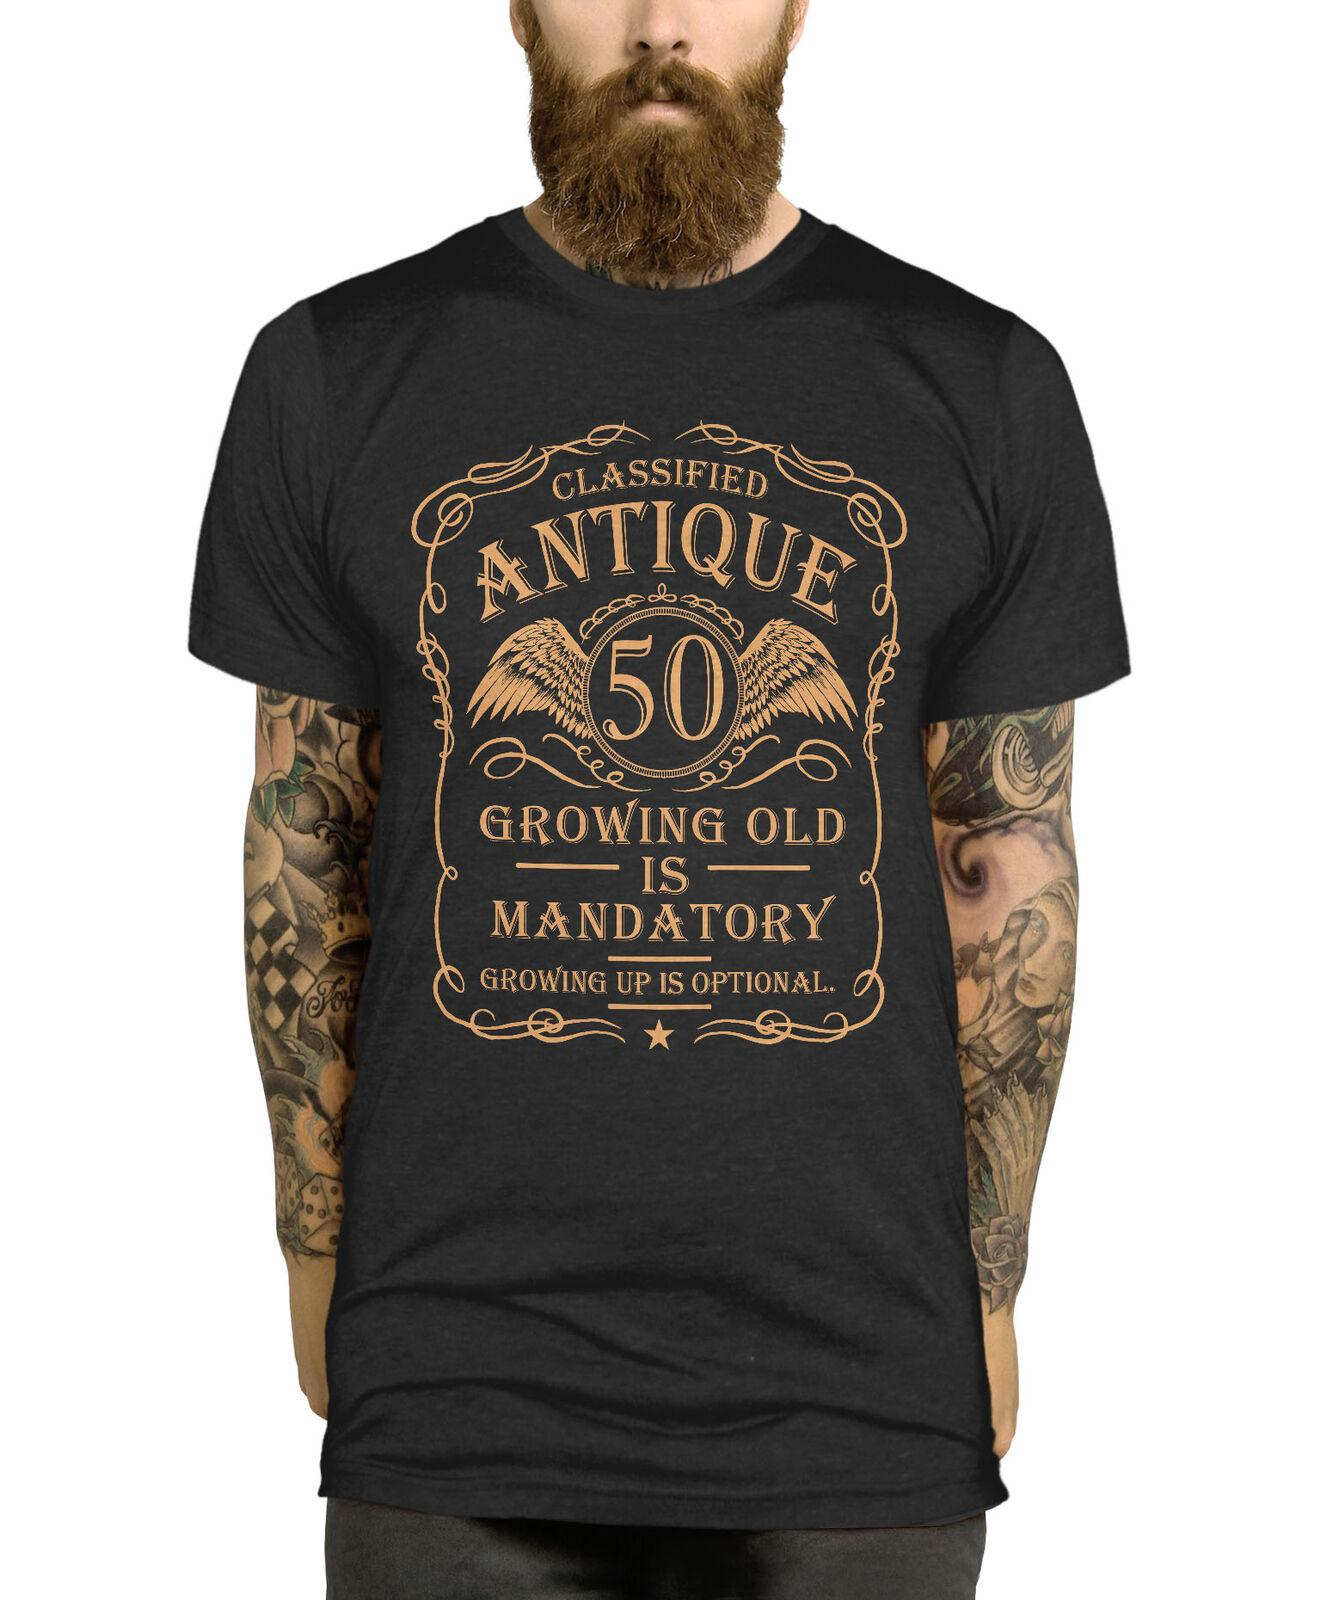 50th Birthday T Shirt Gift Idea For Men Funny Present Vintage 50 Year Old Man